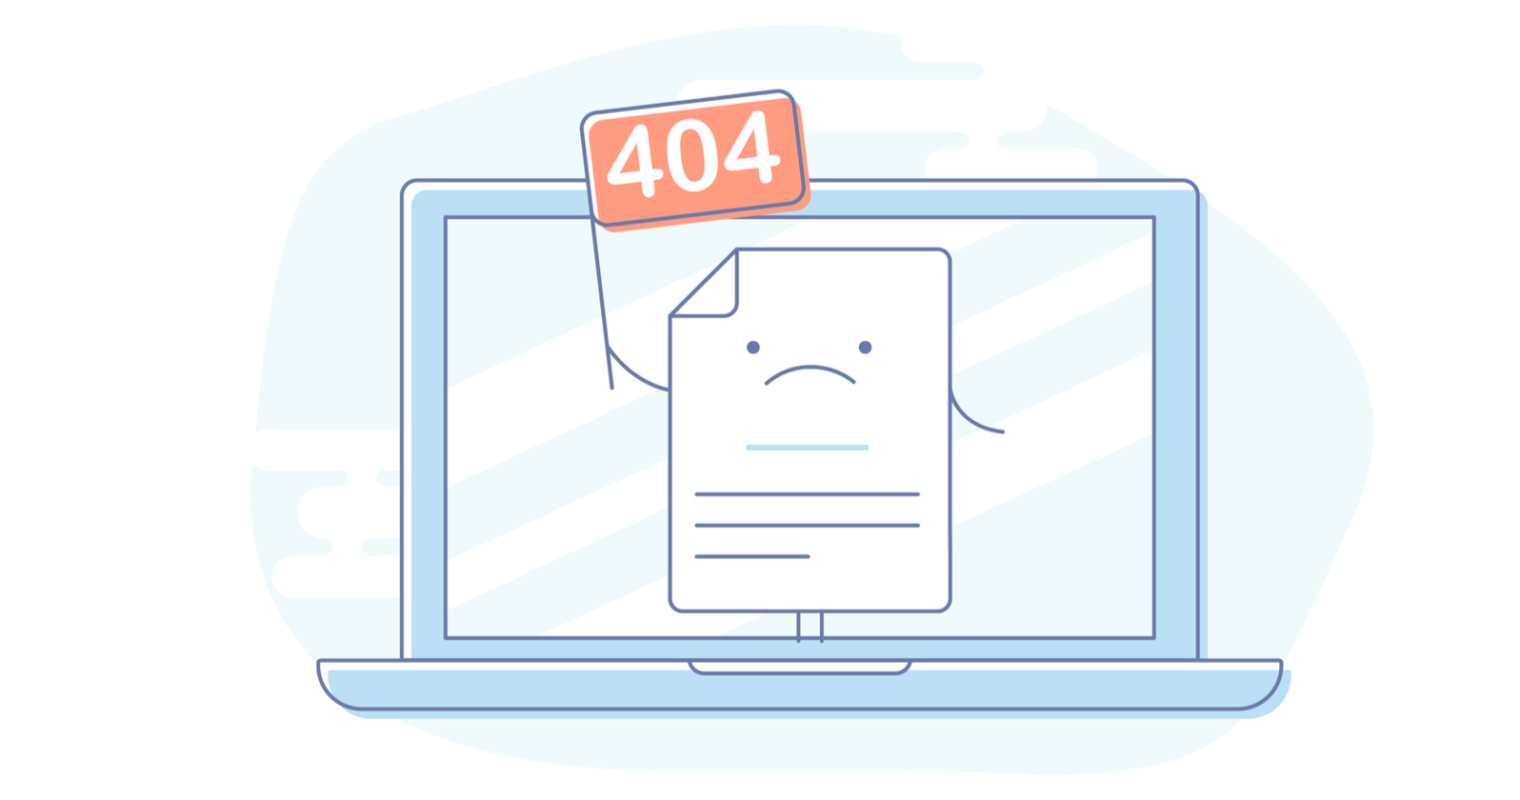 How to Map 404 URLs at Scale with Sentence Embeddings